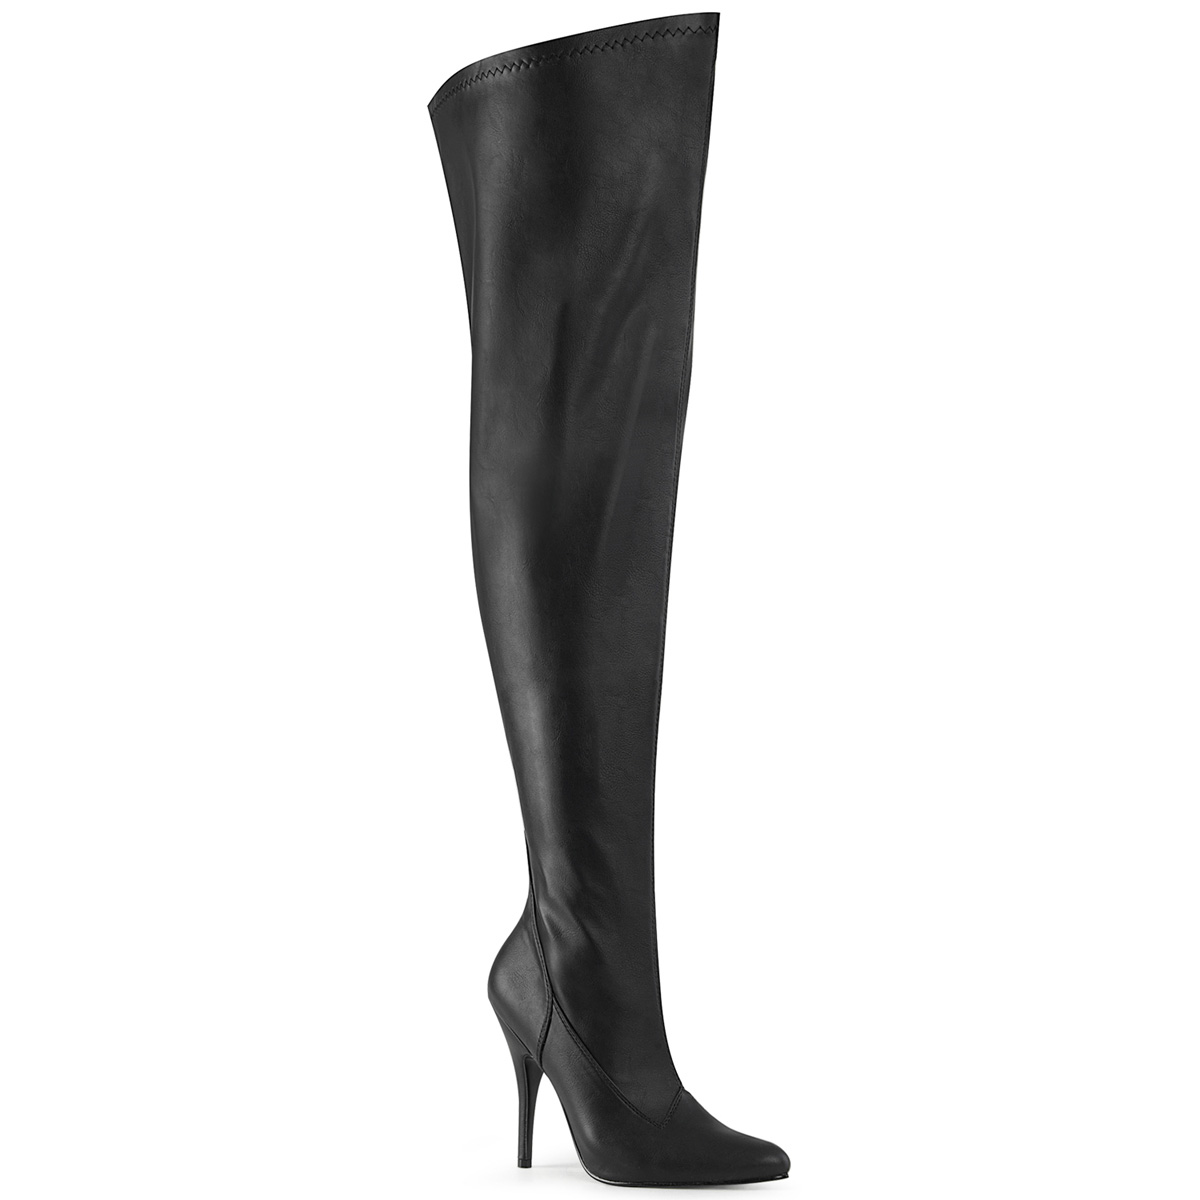 Pleaser Pink Label SEDUCE-3000WC ワイドカーフサイハイブーツ 5inch Heel Stretch Wide Calf Thigh Boot, Side Zip◆取り寄せ